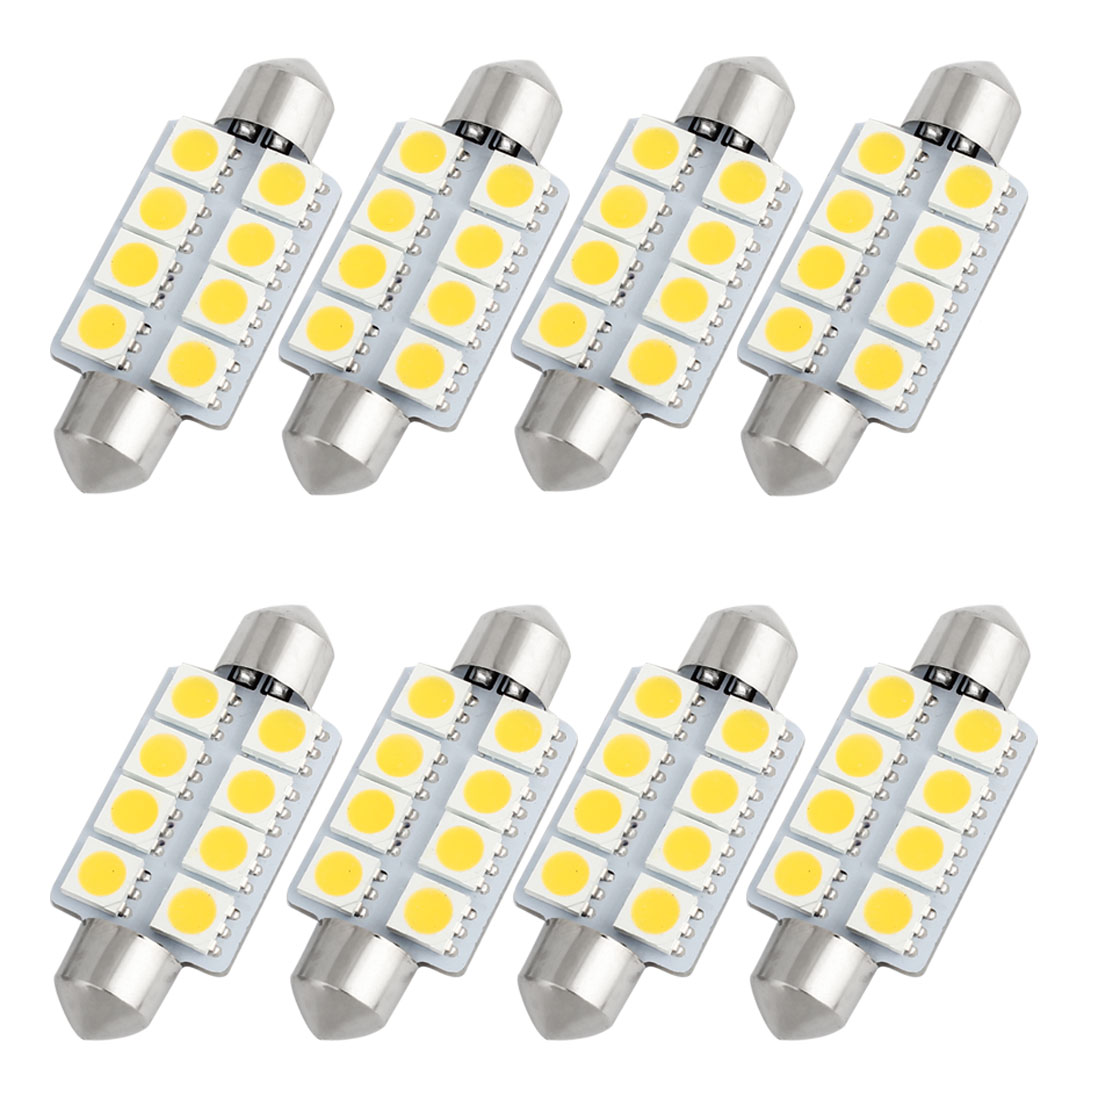 8pcs 41mm 5050 SMD 8-LED Festoon Dome Light Warm White 6413 211-2 212-2 560 Internal